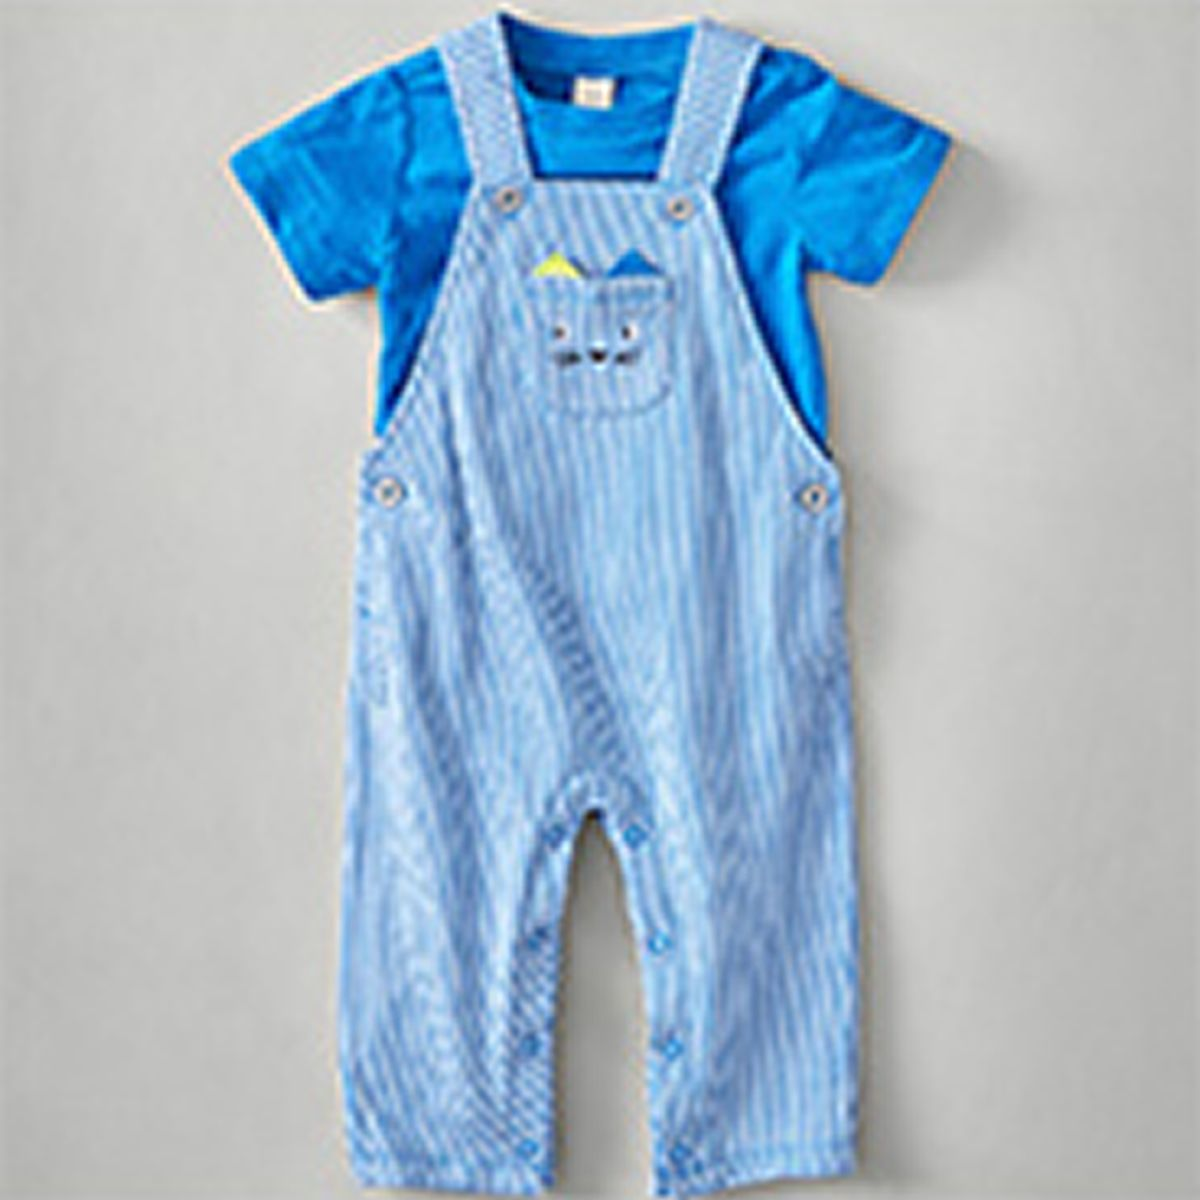 7618c89a9f1 Newborn Clothes - Macy s